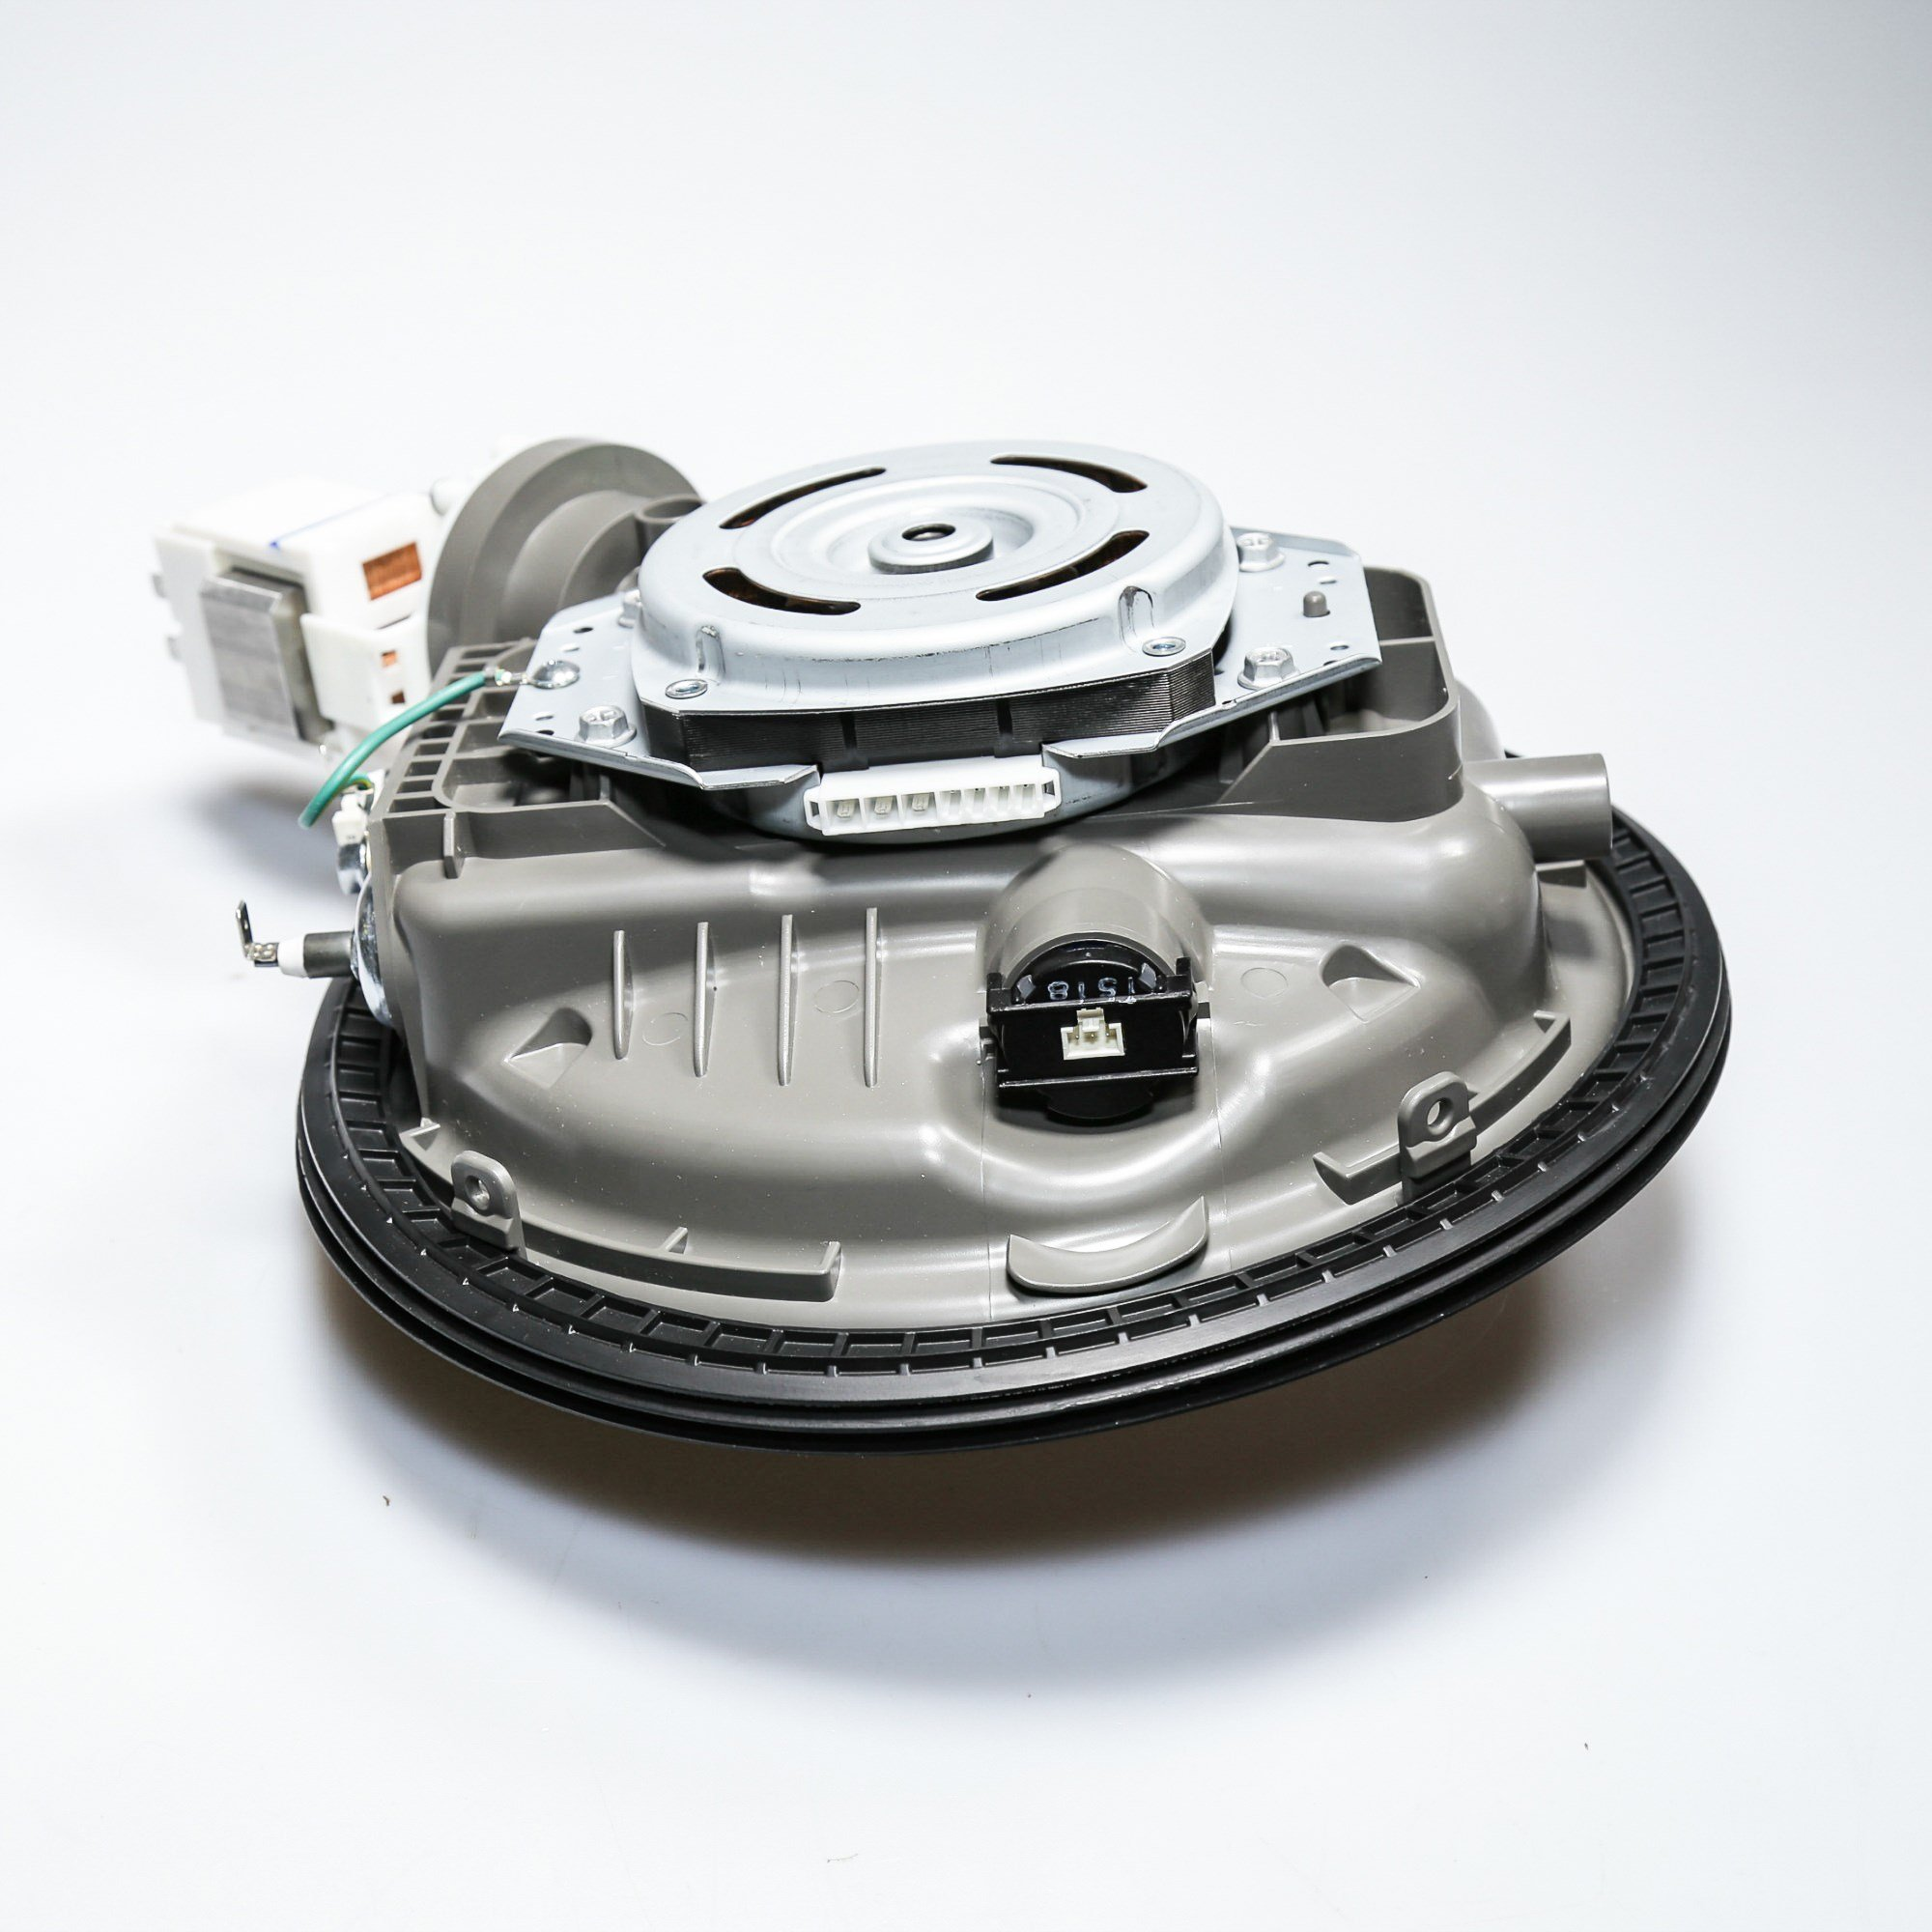 LG AJH31248608 Pump and Motor Assembly, Gray by LG